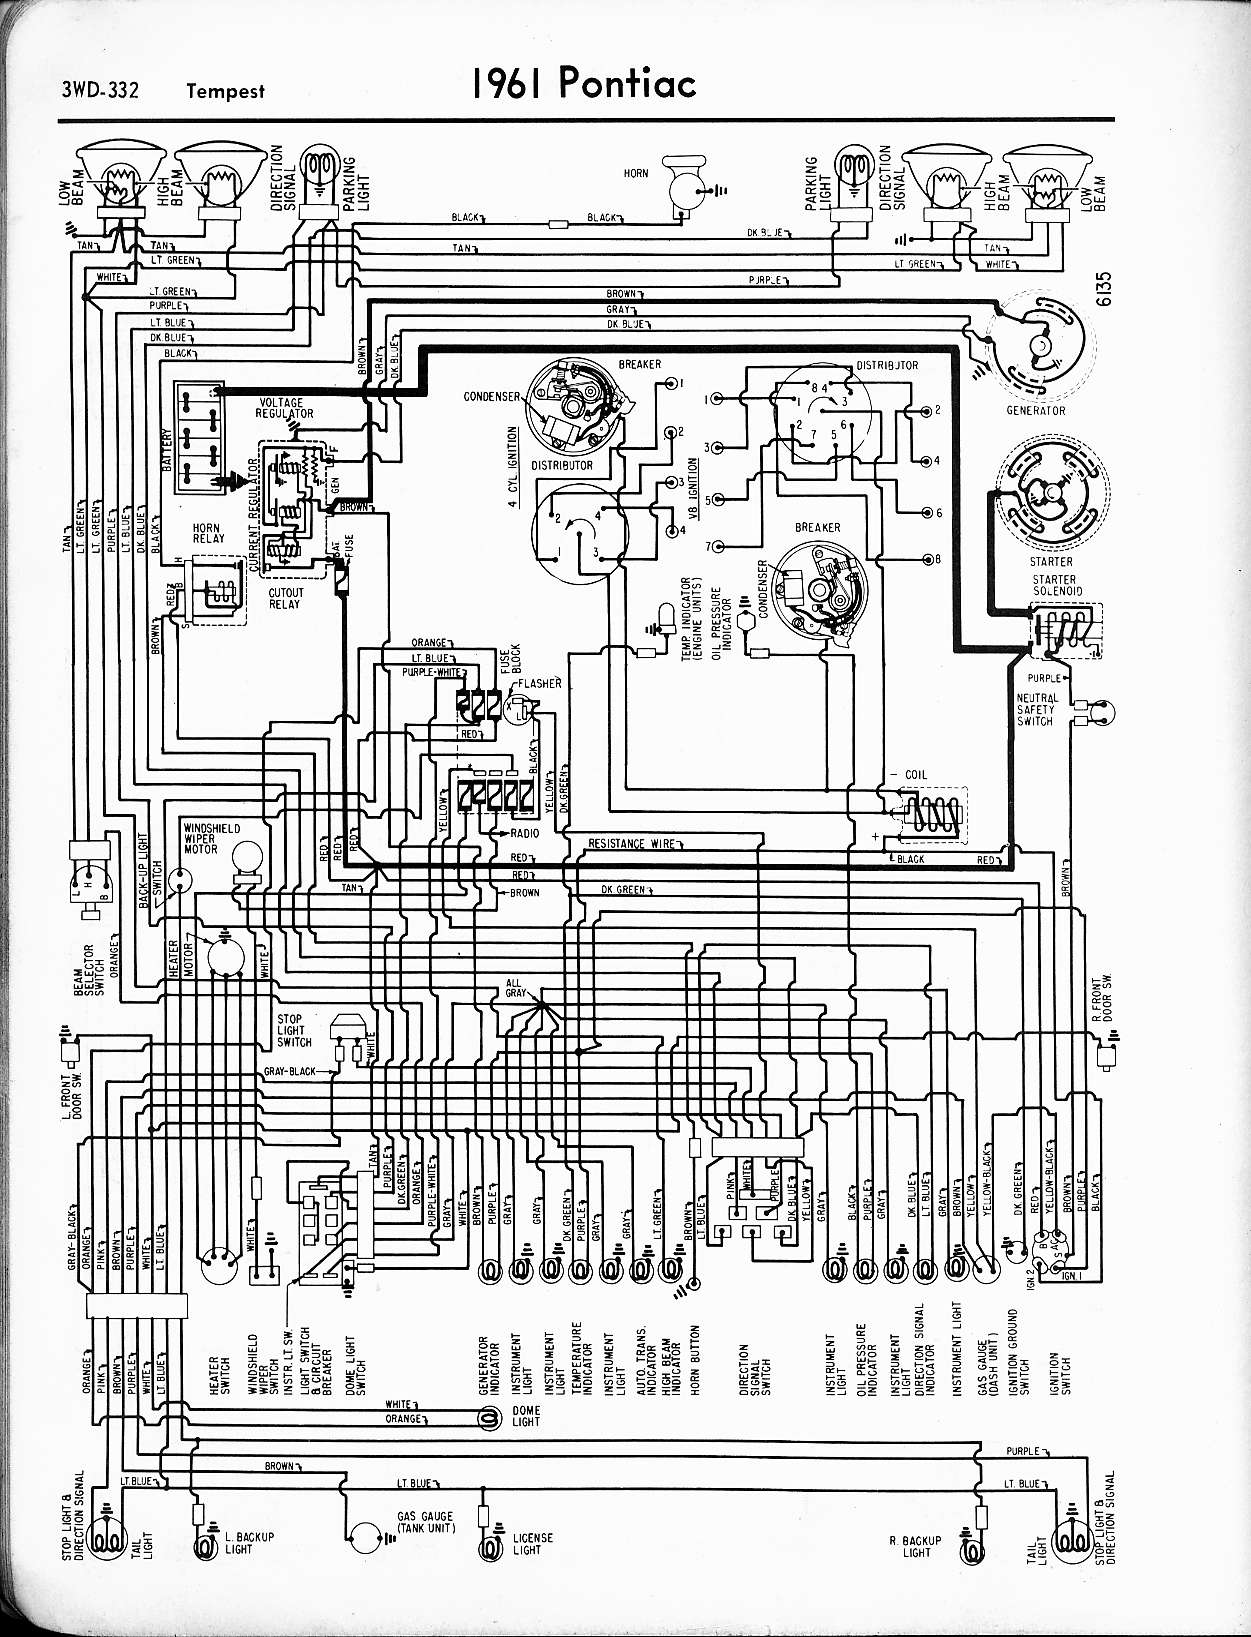 1968 chevelle wiring diagram craftsman chainsaw fuel line routing wallace racing diagrams 1961 tempest